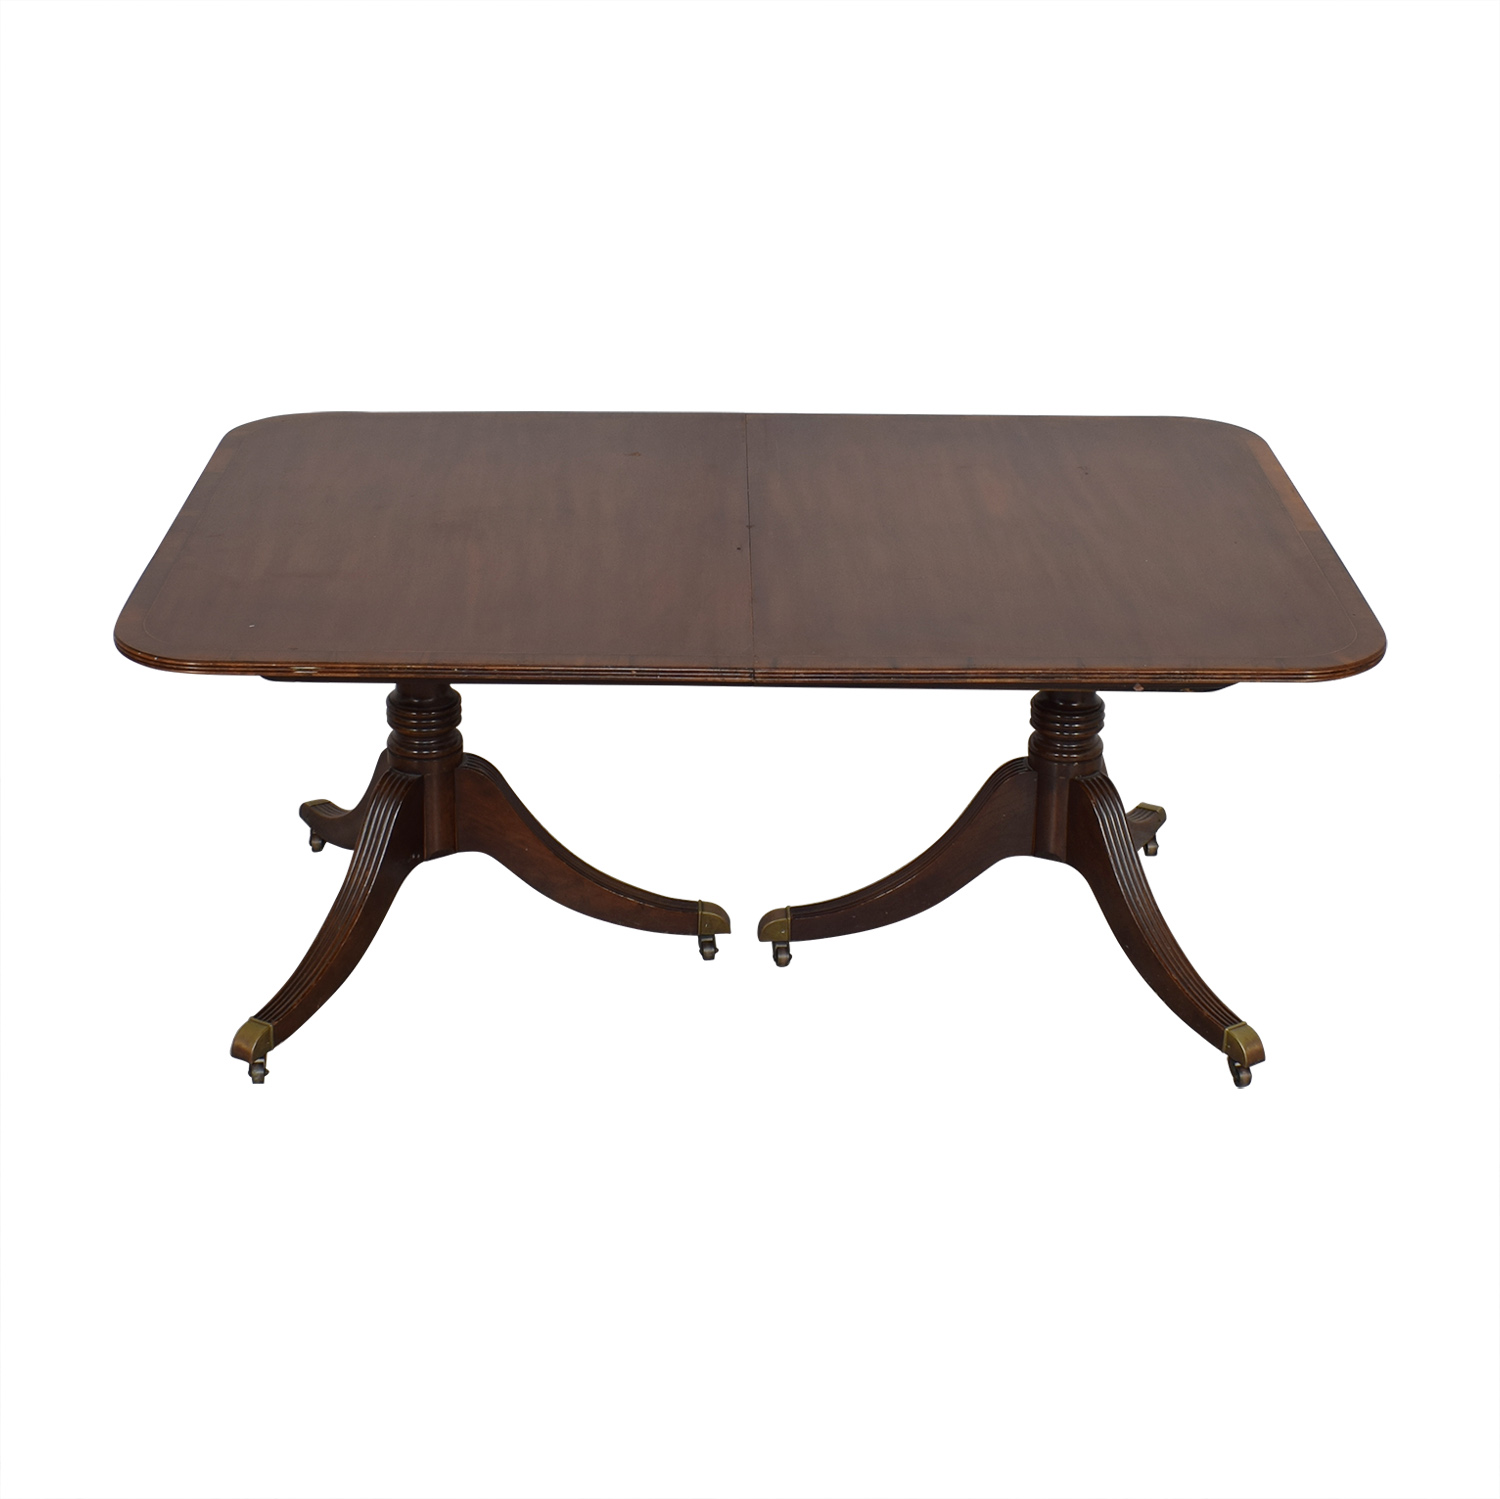 Vintage Dining Table / Tables